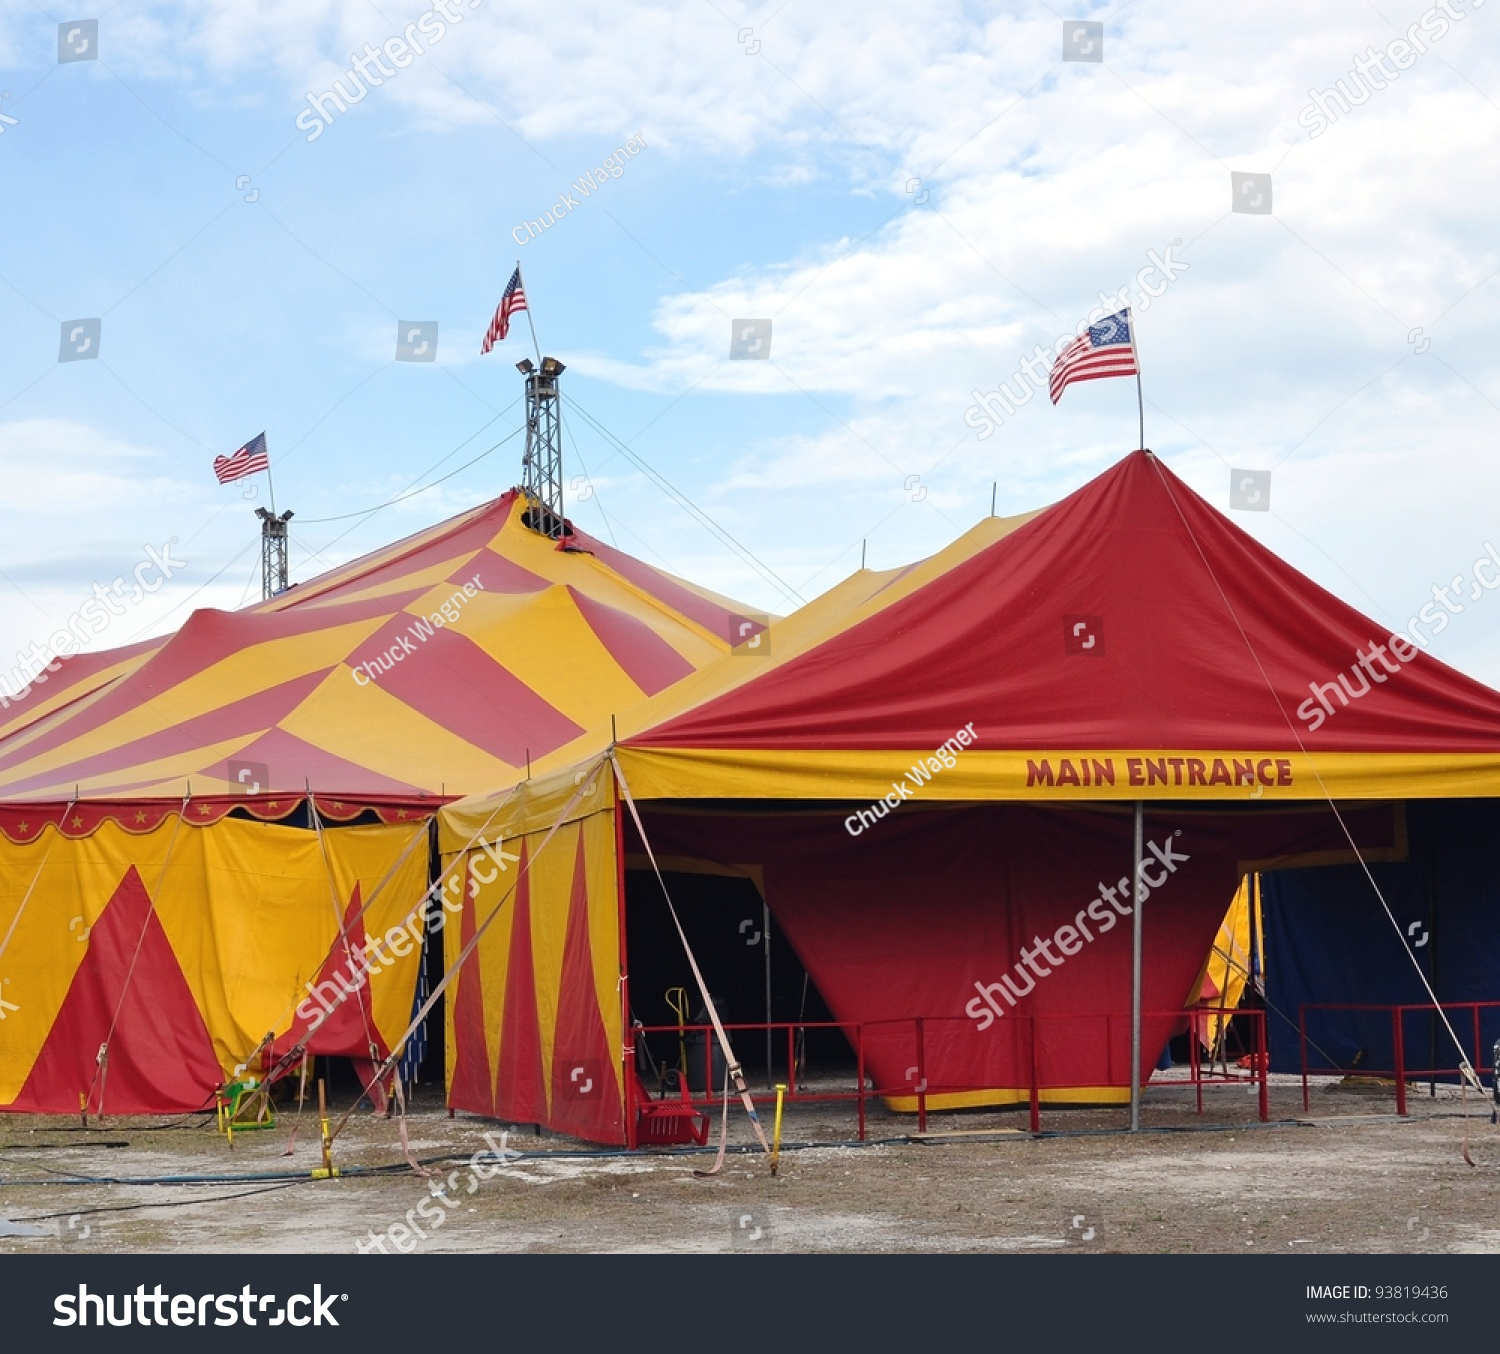 Circus Tents Main Entrance & Circus Tents Main Entrance Stock Photo 93819436 - Shutterstock